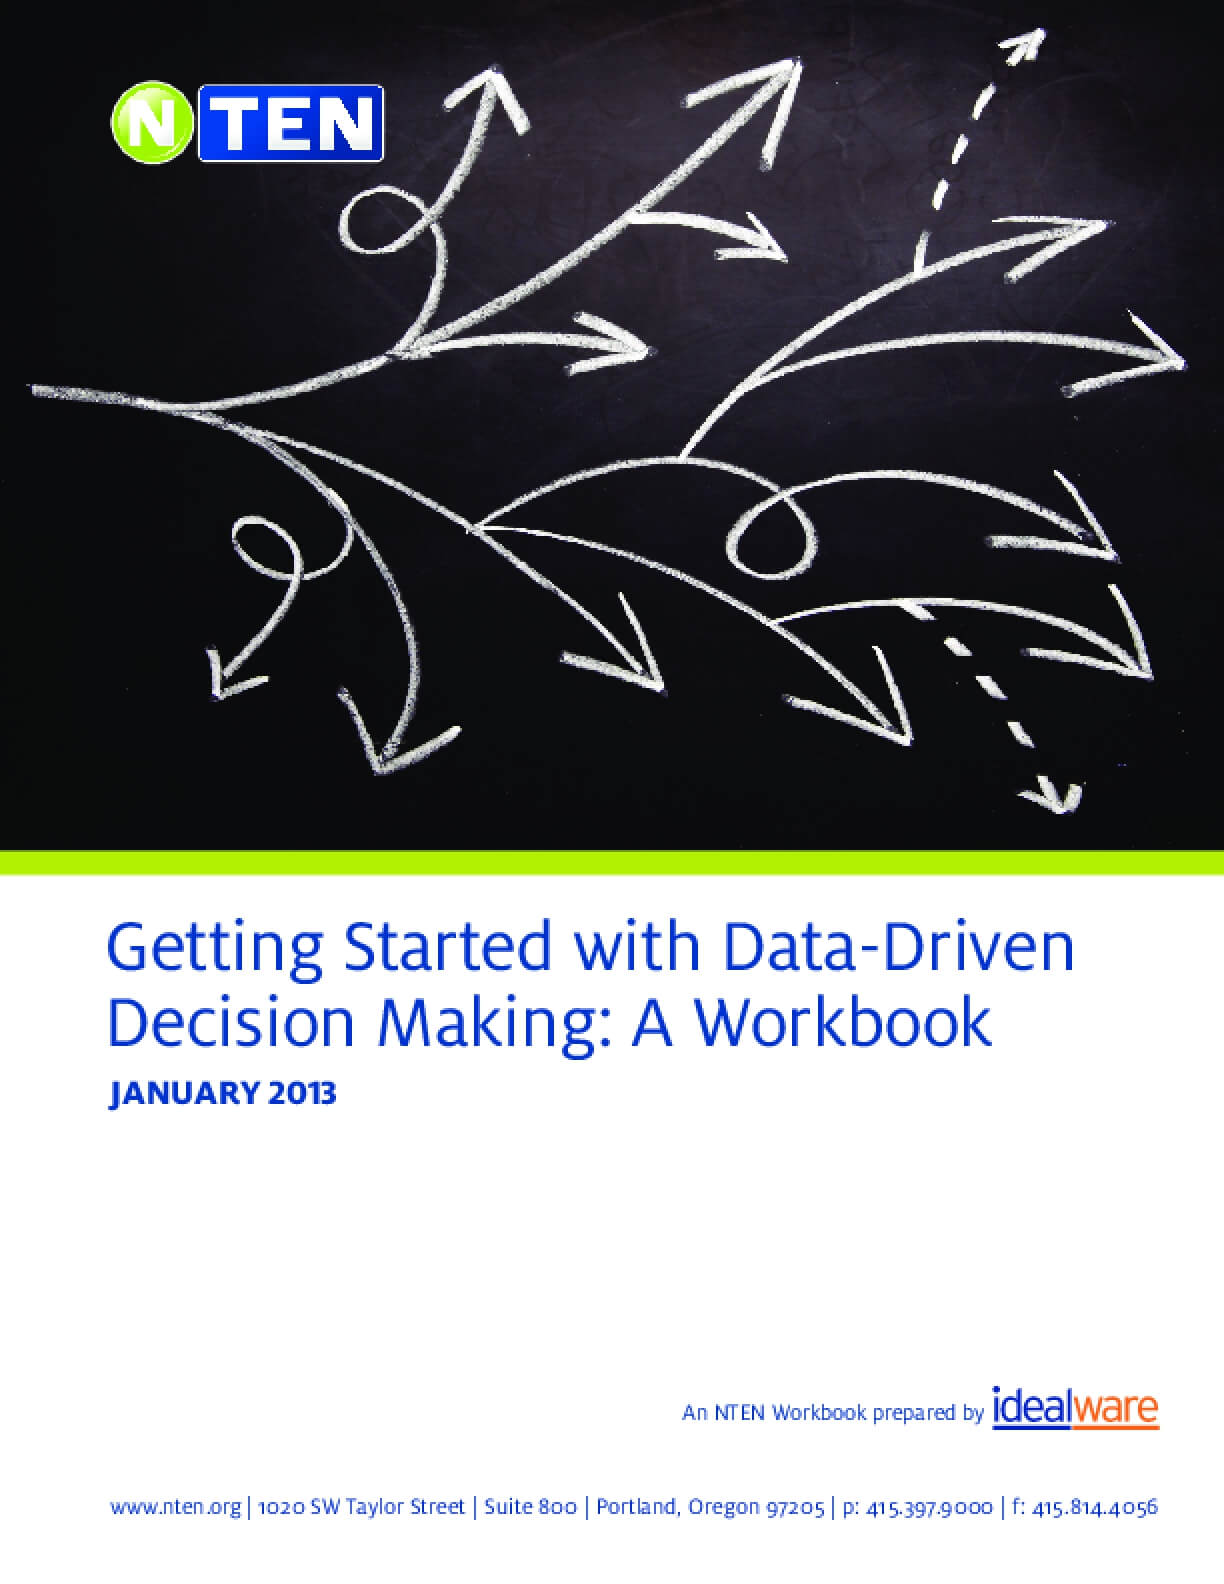 Getting Started With Data-driven Decision Making: A Workbook